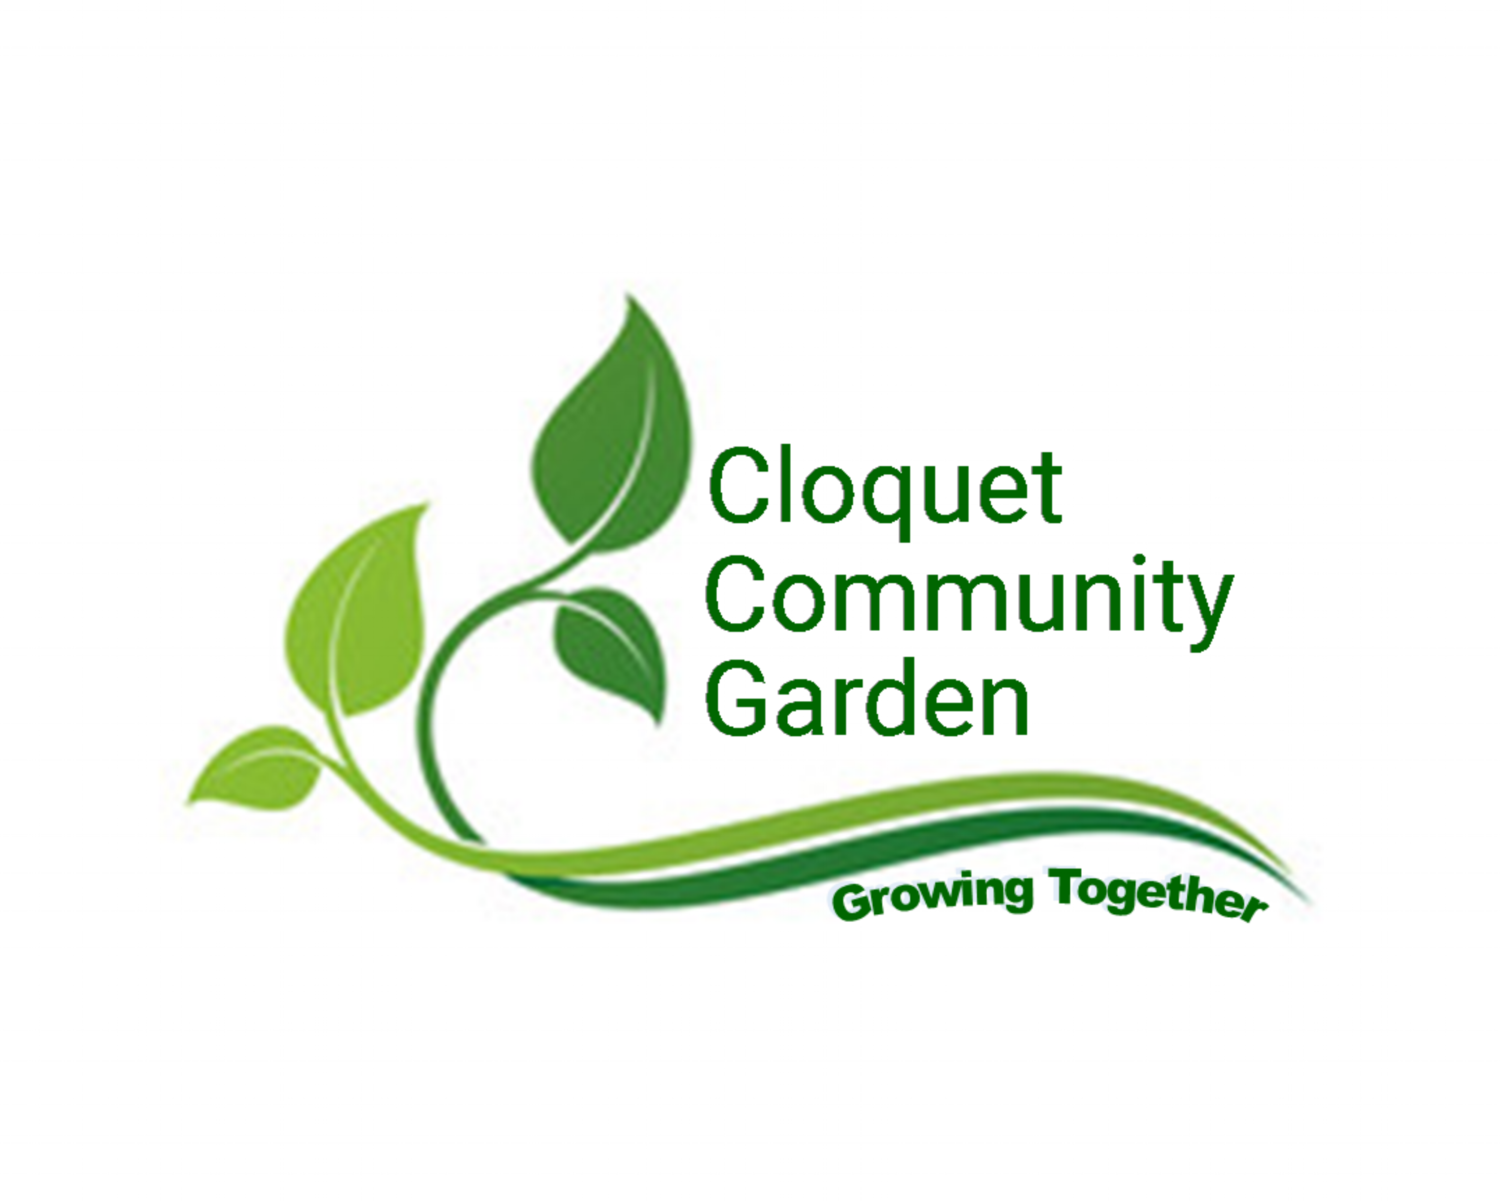 Cloquet Community Garden